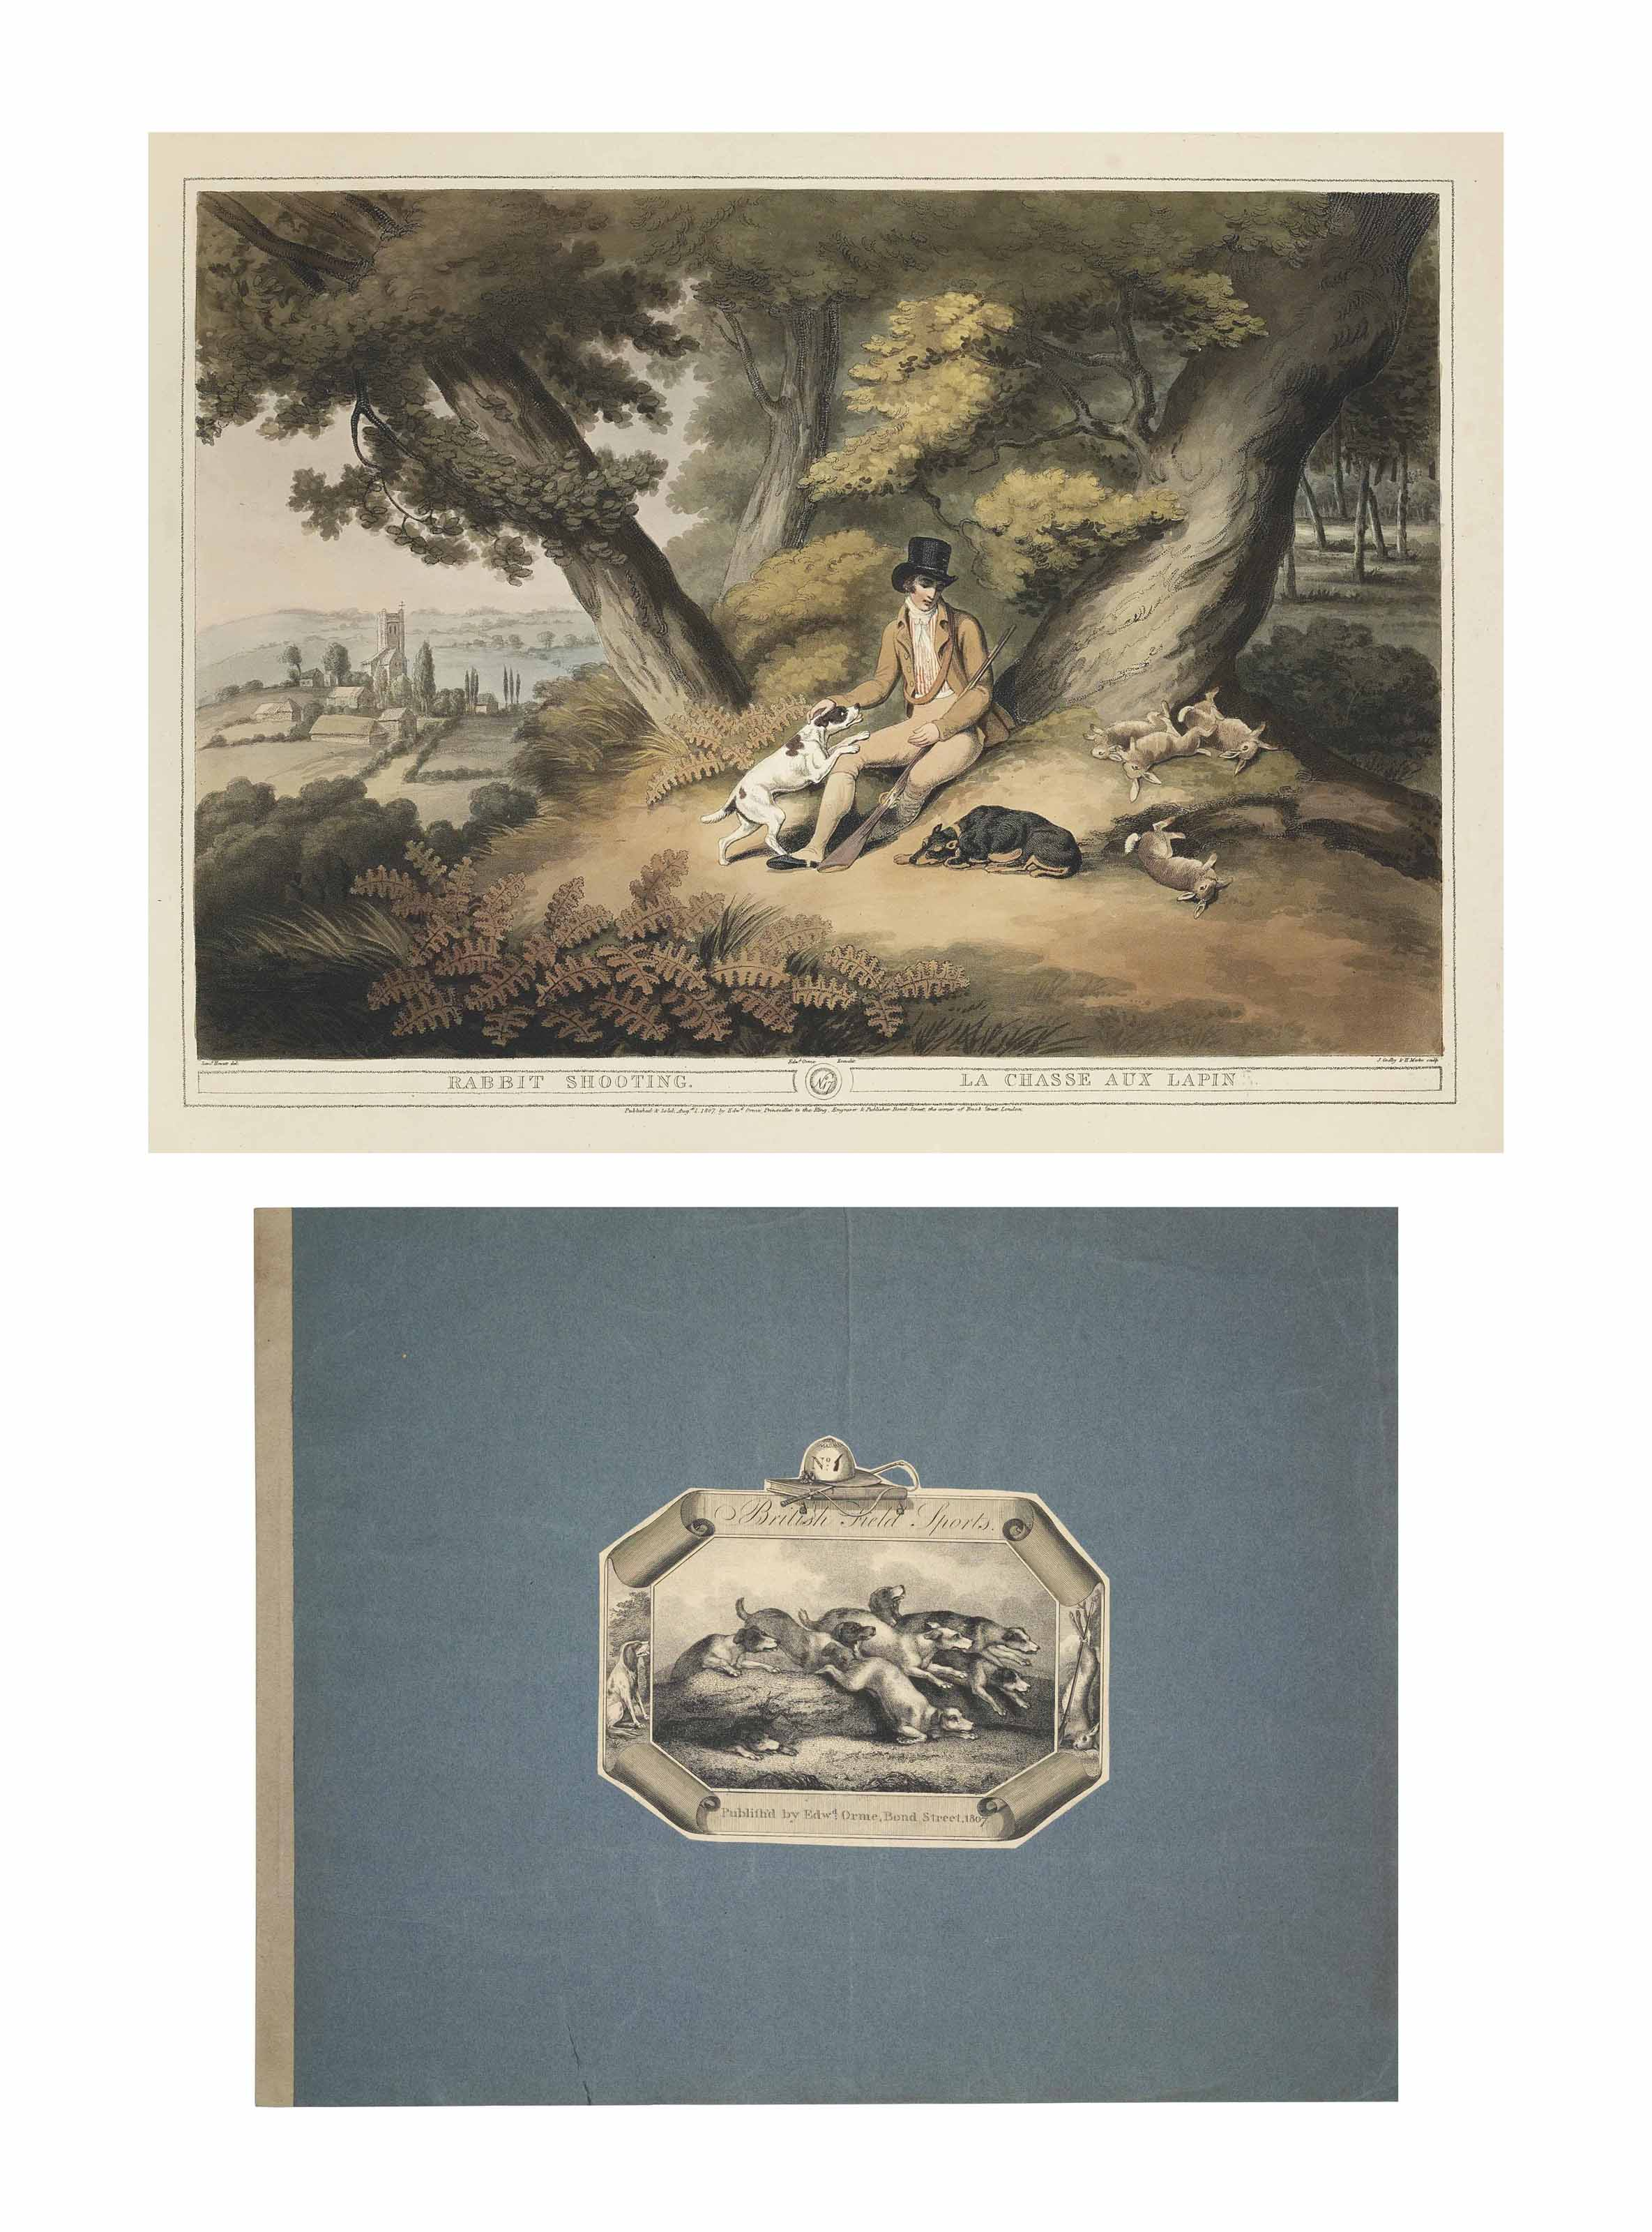 ORME, Edward and HOWITT, Samuel (?1765-1822). Orme's Collection of British Field Sports. London: Edward Orme, 1807 [-1808]. 10 parts, oblong 2° (458 x 580mm). Hand-coloured aquatint title, list of plates with aquatint vignette, and 20 hand-coloured aquatint plates by Godby, Vivares, Craig, Clark and Merke after Howitt. (Short tears with old repairs in the margins of plates 1, 4, 10-13 and 20; plates 6 and 19 with repaired tears just touching the image; occasional light browning; overslips on plates 2 and 9 worn.) Parts 1, and 3-6 each in the original blue paper wrappers backed with drab paper spine, the upper side of each with a large engraved title label numbered in manuscript; parts 2, and 8-10 each skilfully bound to style; part 7 possibly bound to style but reusing the printed label (light wear); together in a blue half morocco case, probably by Aquarius.